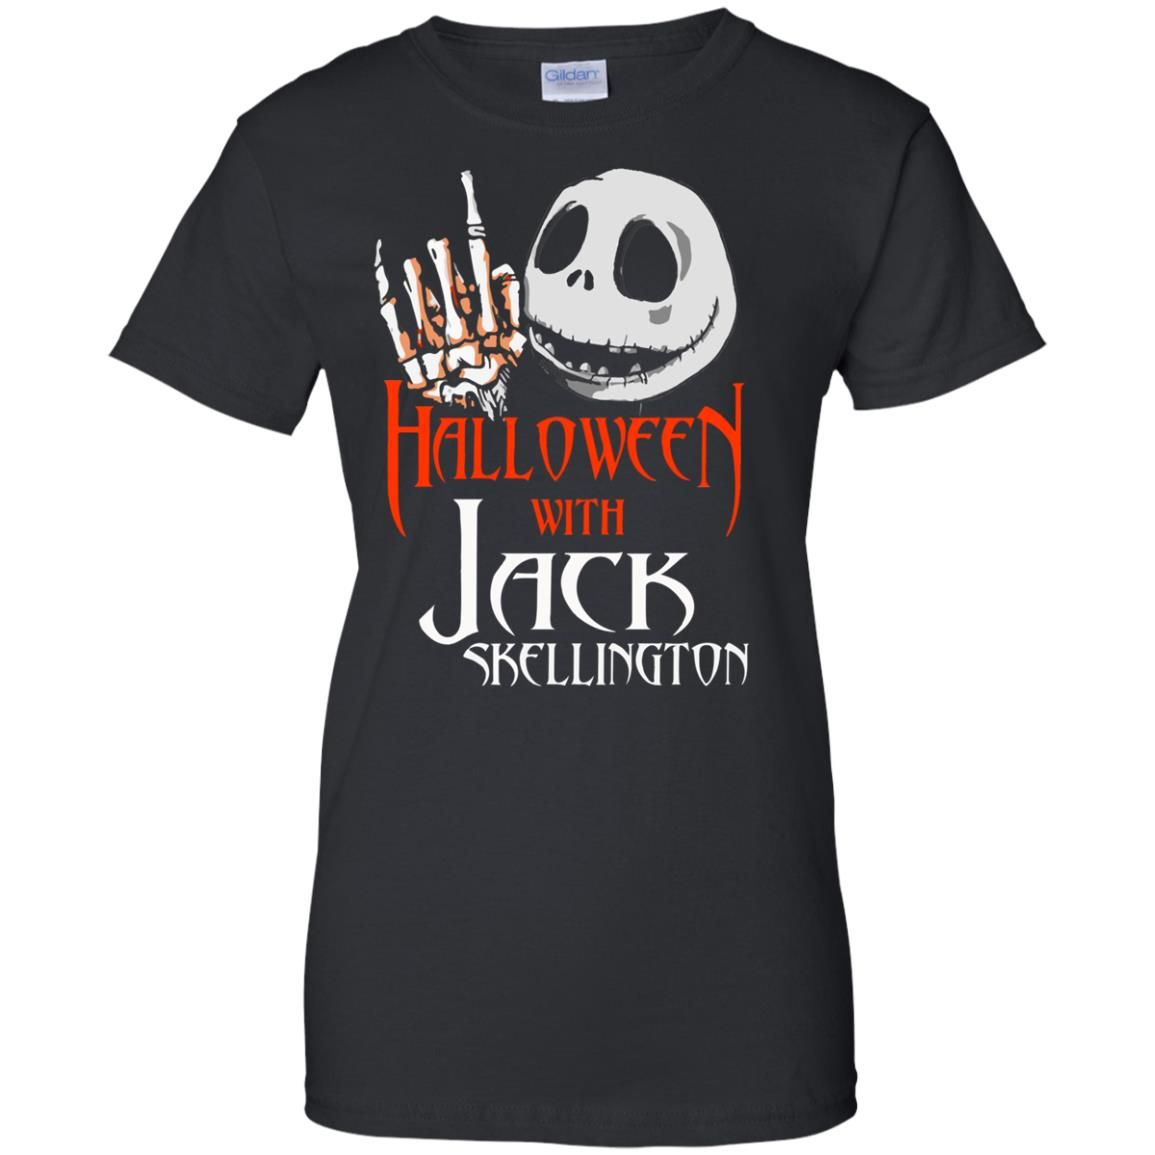 image 1386 - Halloween with Jack Skellington shirt, tank top, sweater